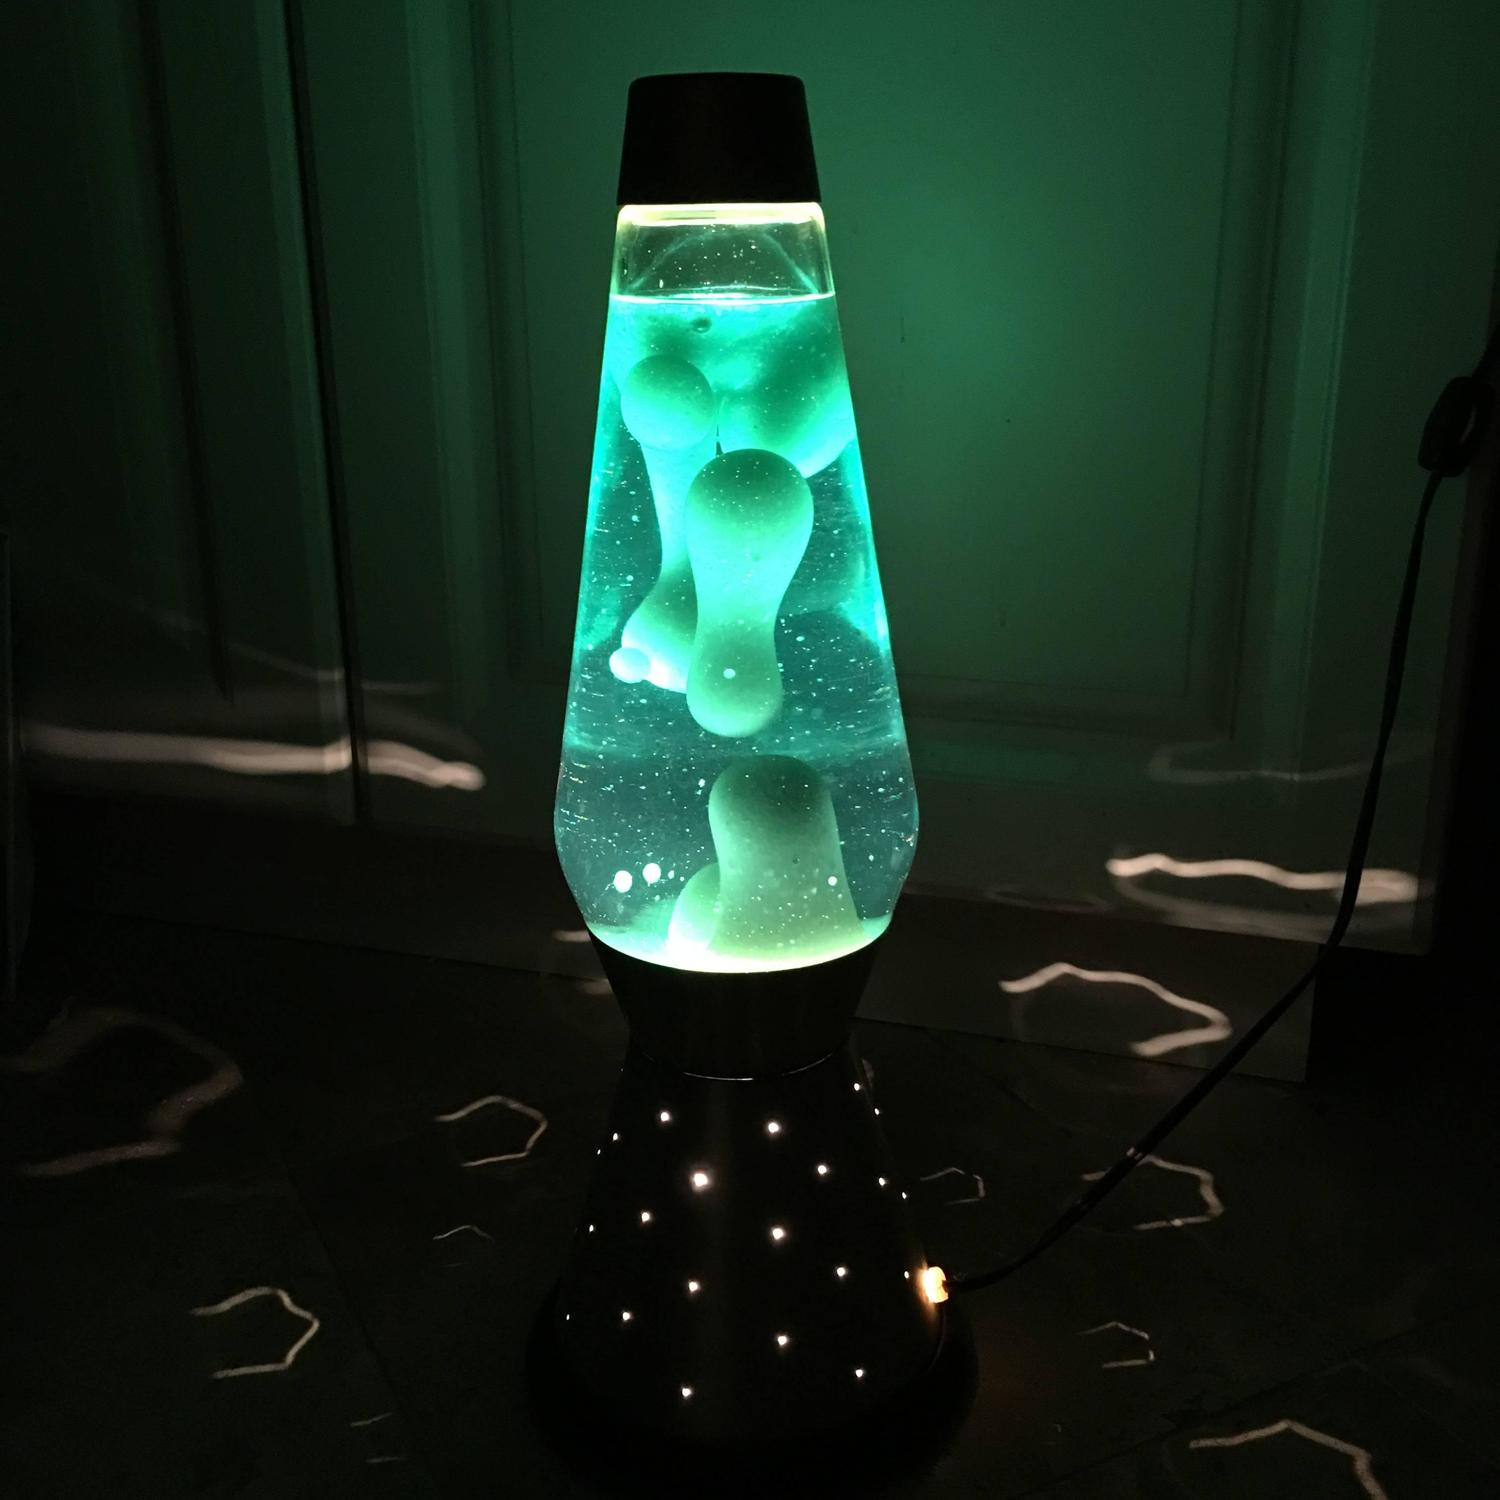 lava lamp dating Mathmos lava lamp bottles last for approximately 2000 hours of use rest of eu website australia  dating lava lamps is not something we can do for you.